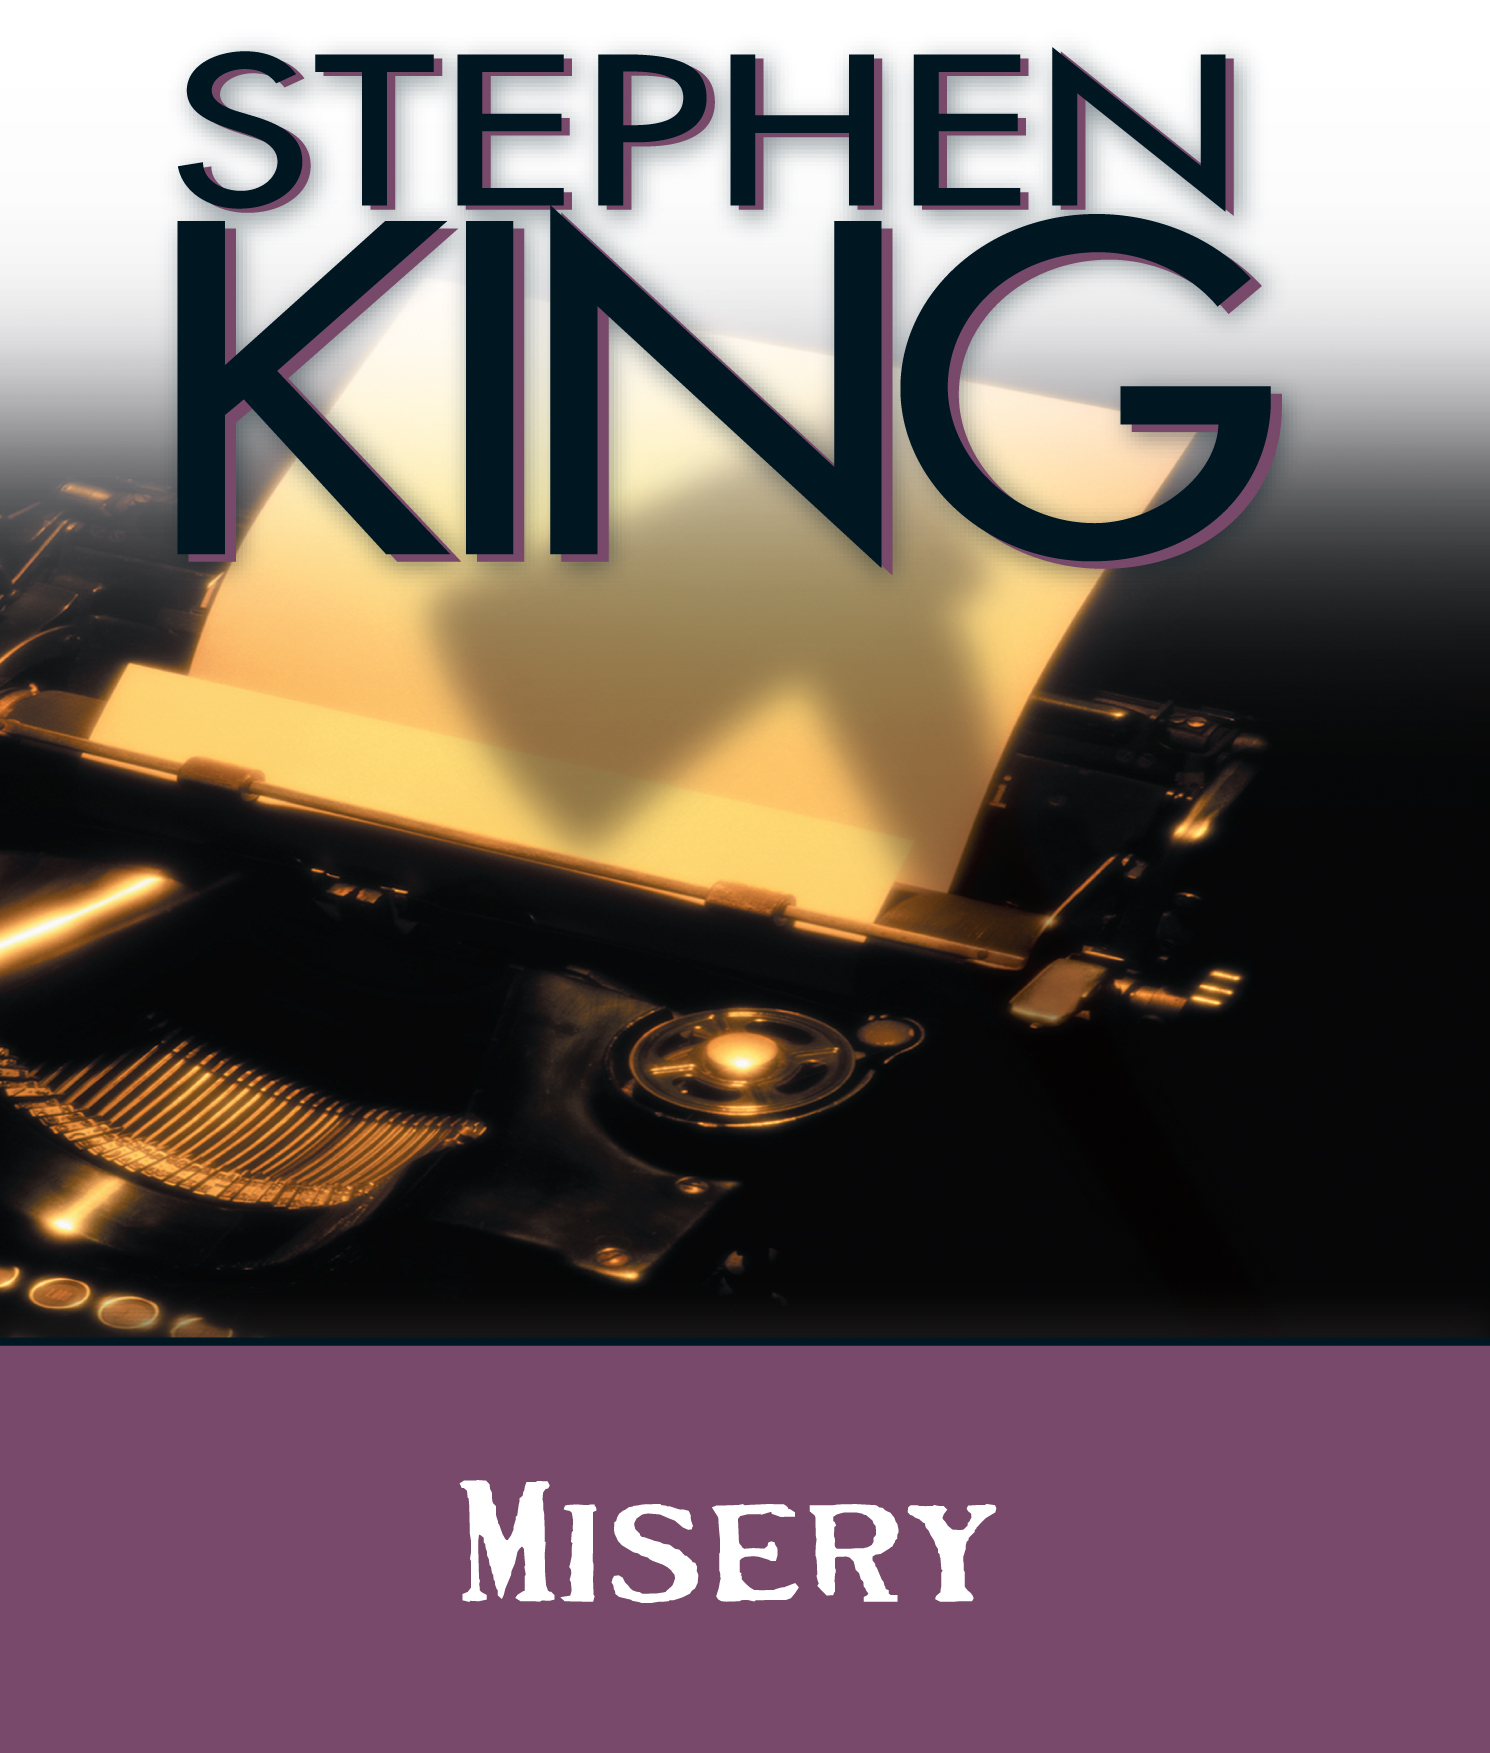 essays on misery by stephen king Scholarly paper- misery by stephen king 'misery' stephen king author-centred reading 'misery' was written by stephen king in 1987 stephen king is a prominent writer and has many fans ranging around the world.